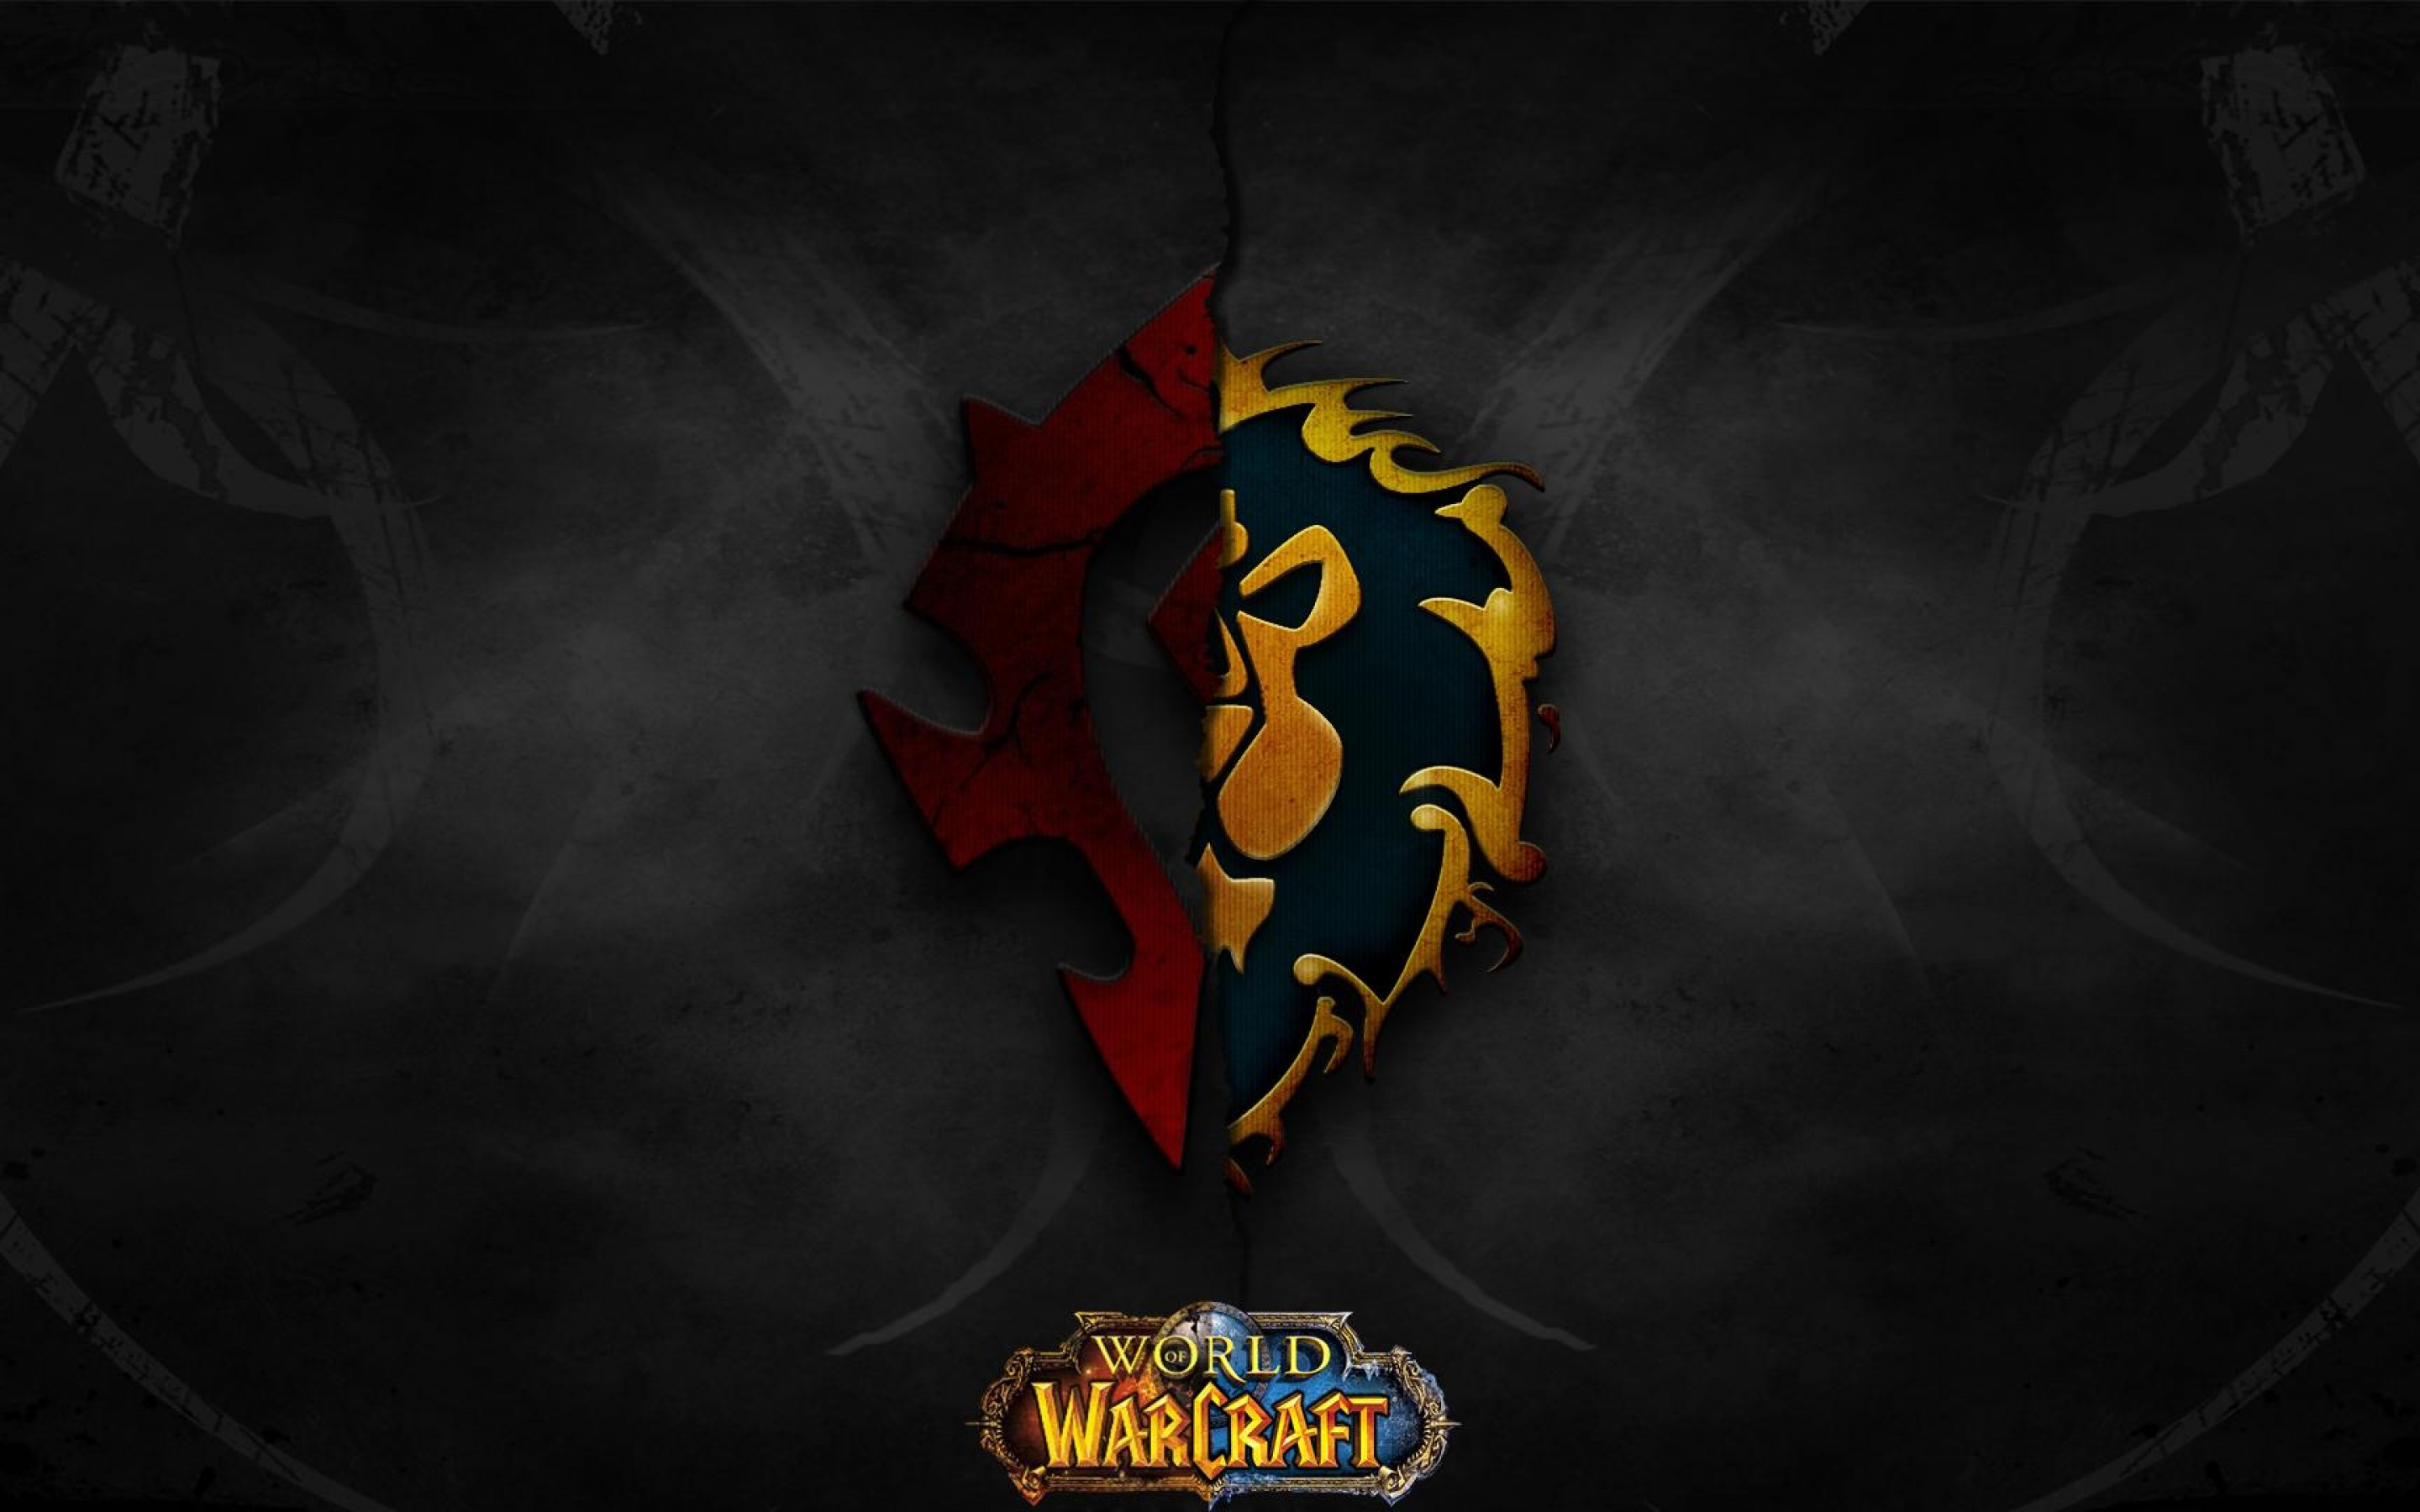 Free Download World Of Warcraft Backgrounds Hd Wallpaper For